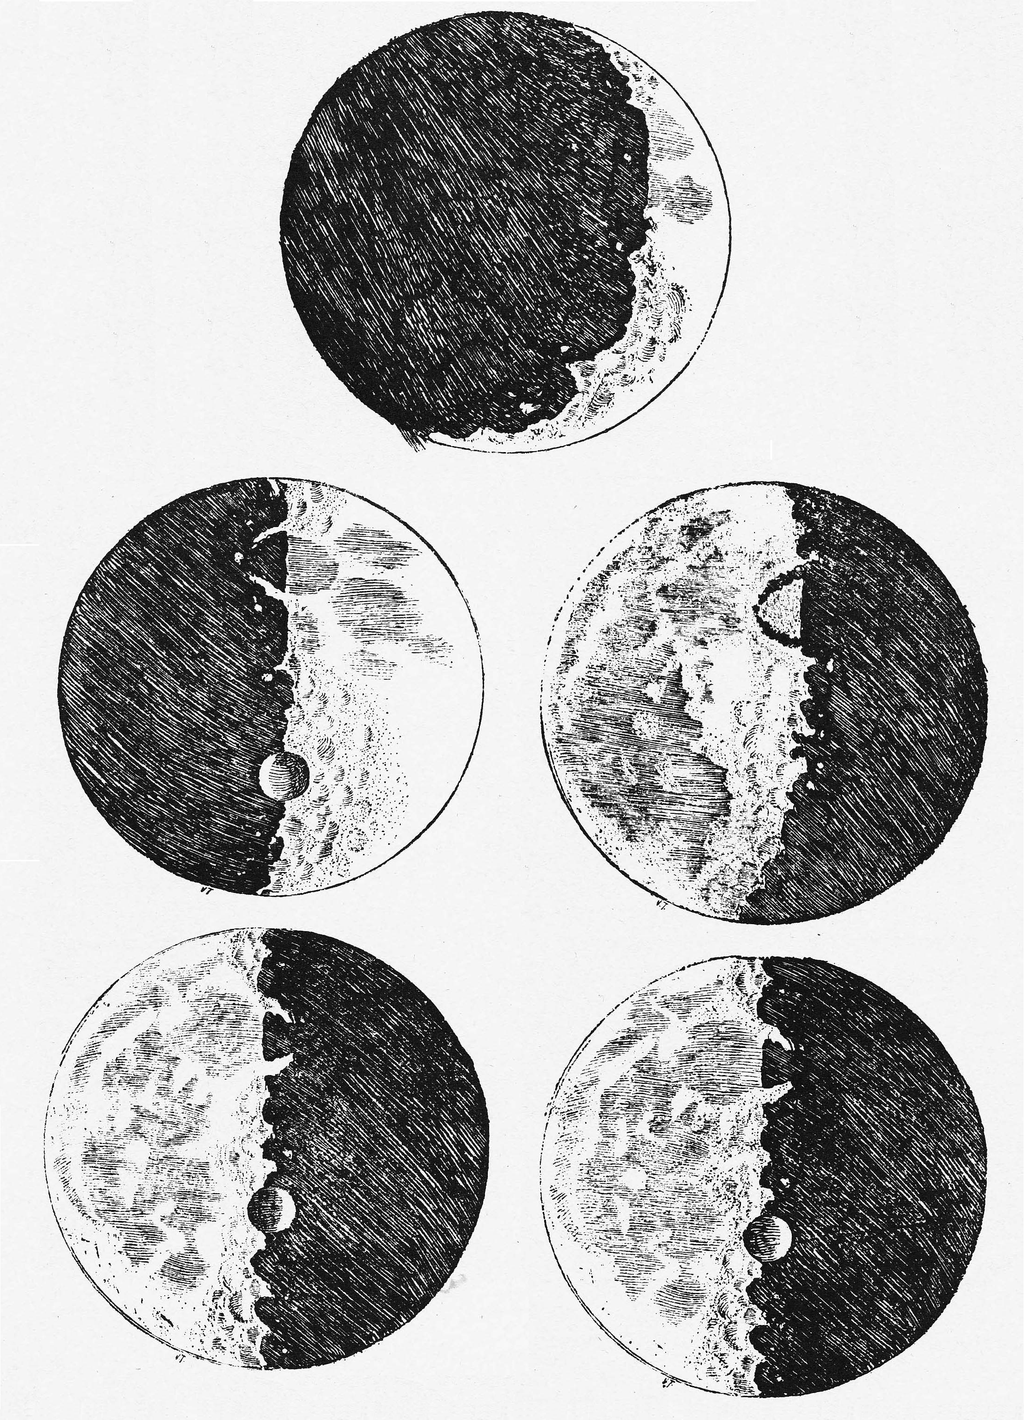 1024px-Galileo's_sketches_of_the_moon